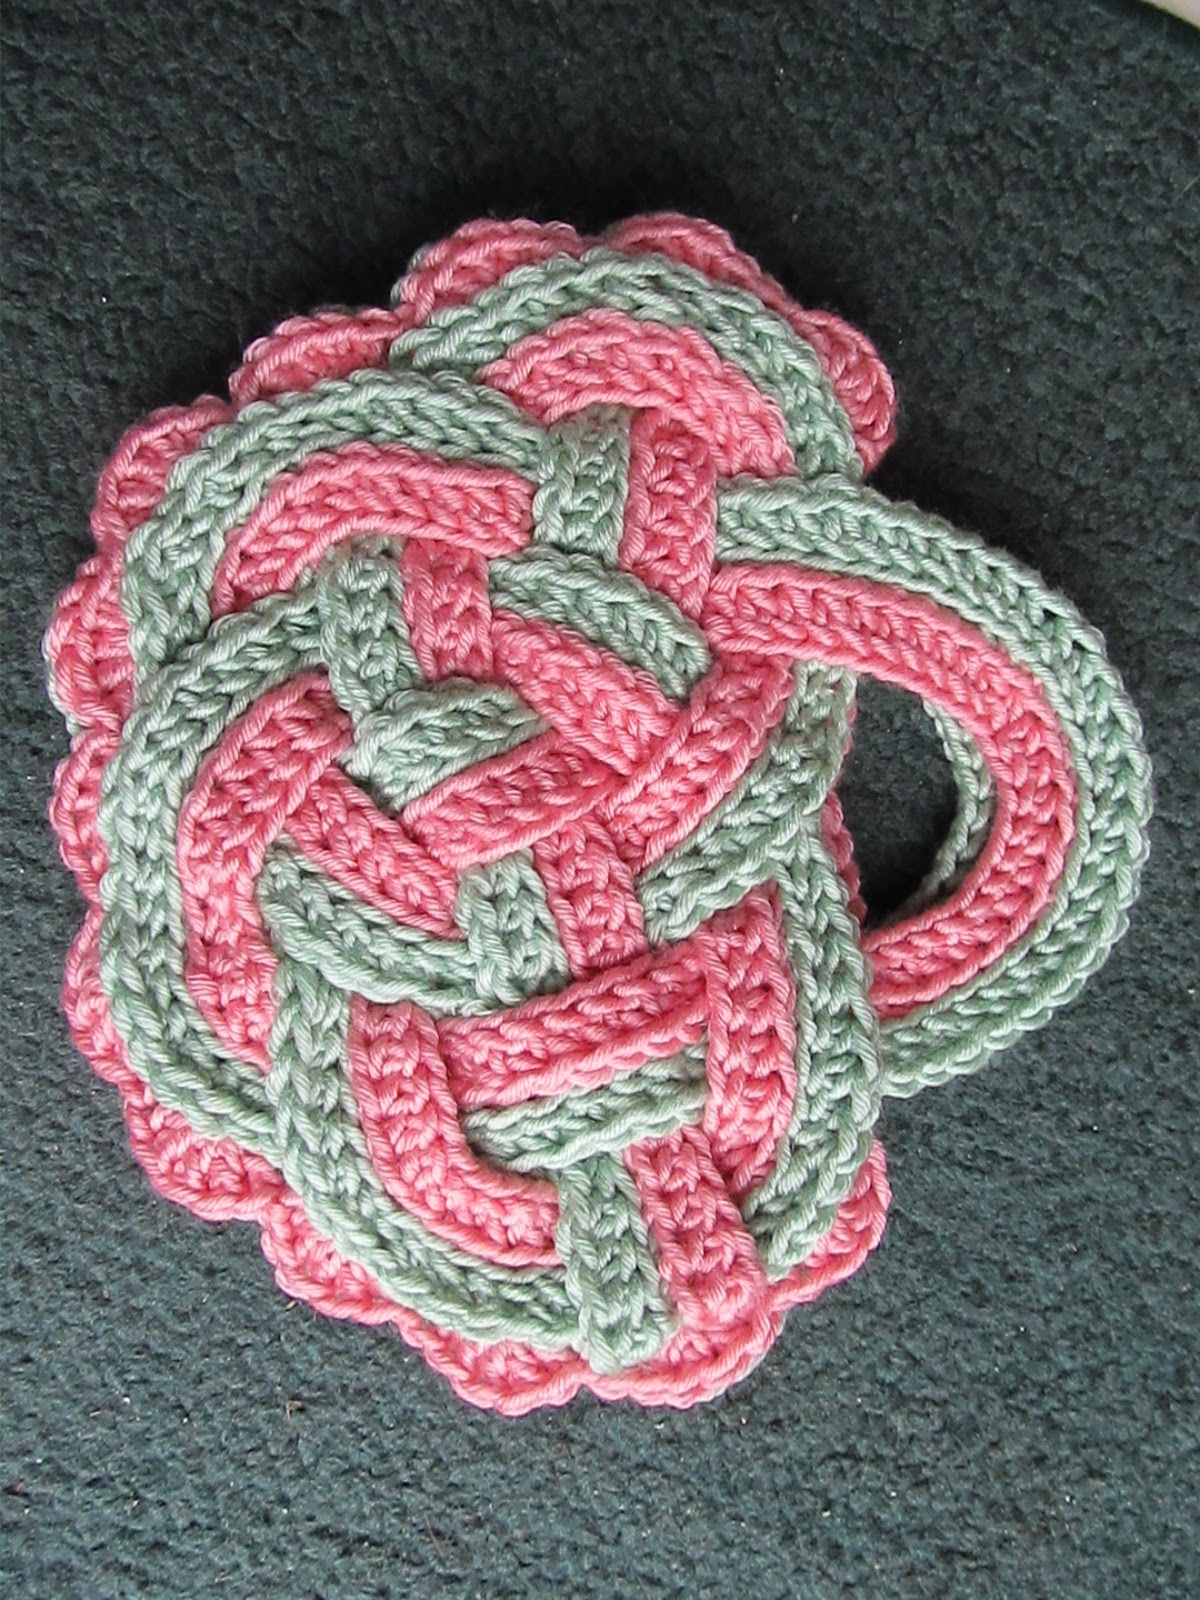 Celtic Knot Crochet: Patterns Coming Soon to Ravelry